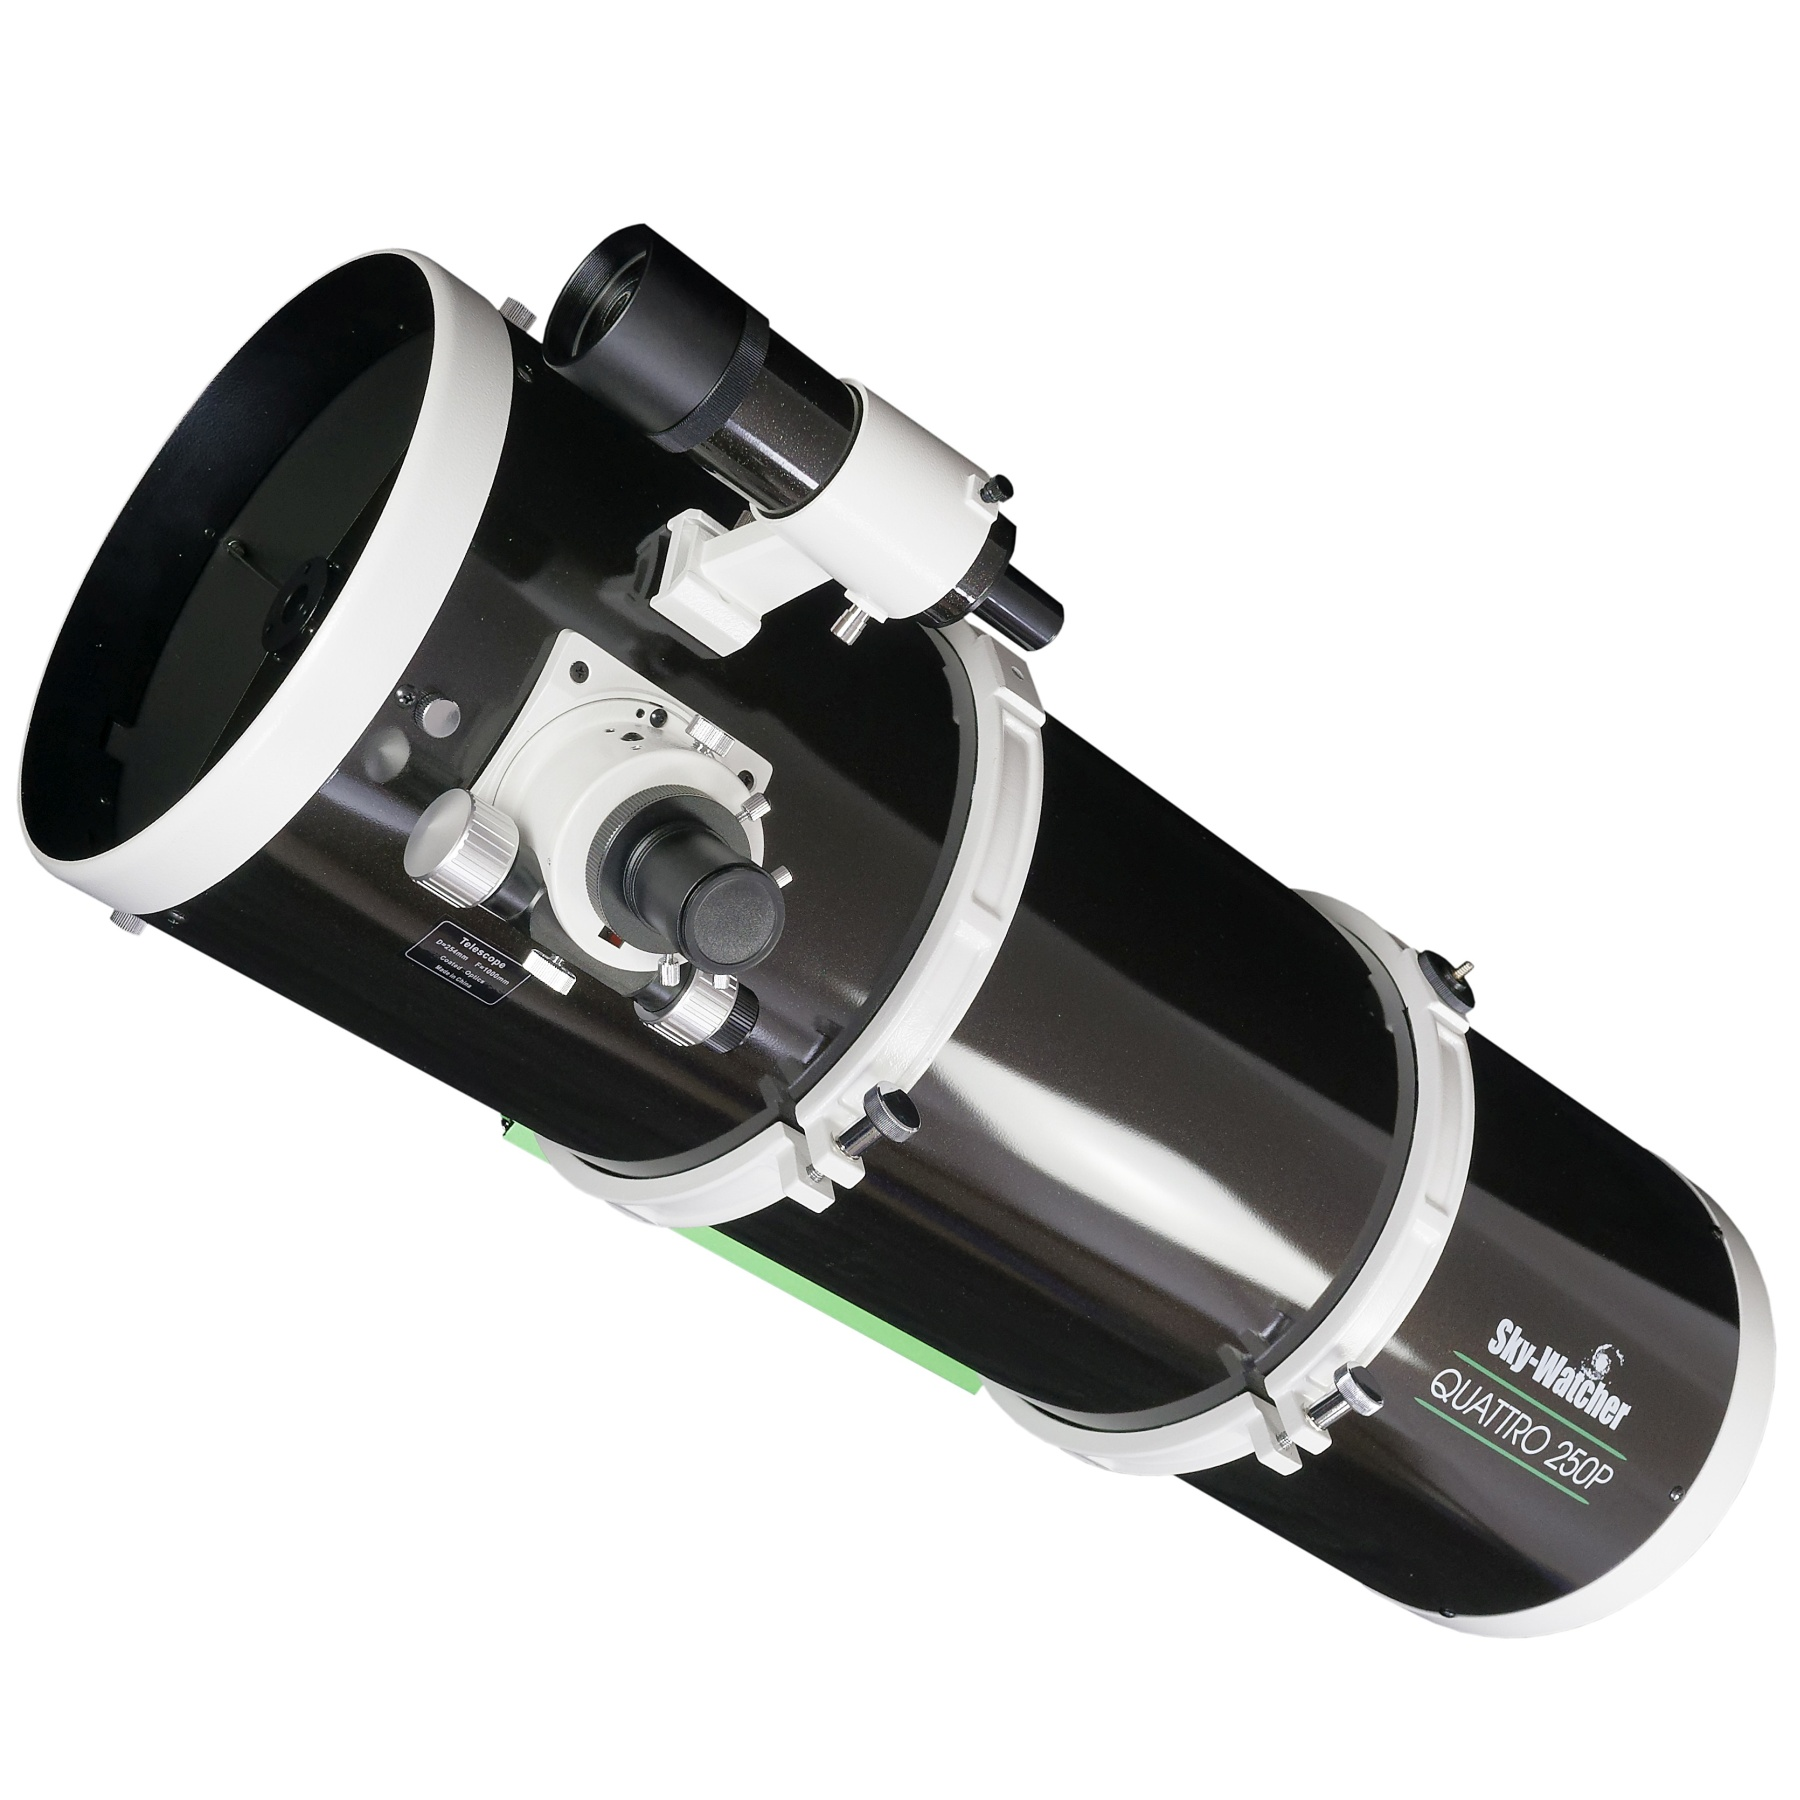 Lacerta SWN25010i -SkyWatcher